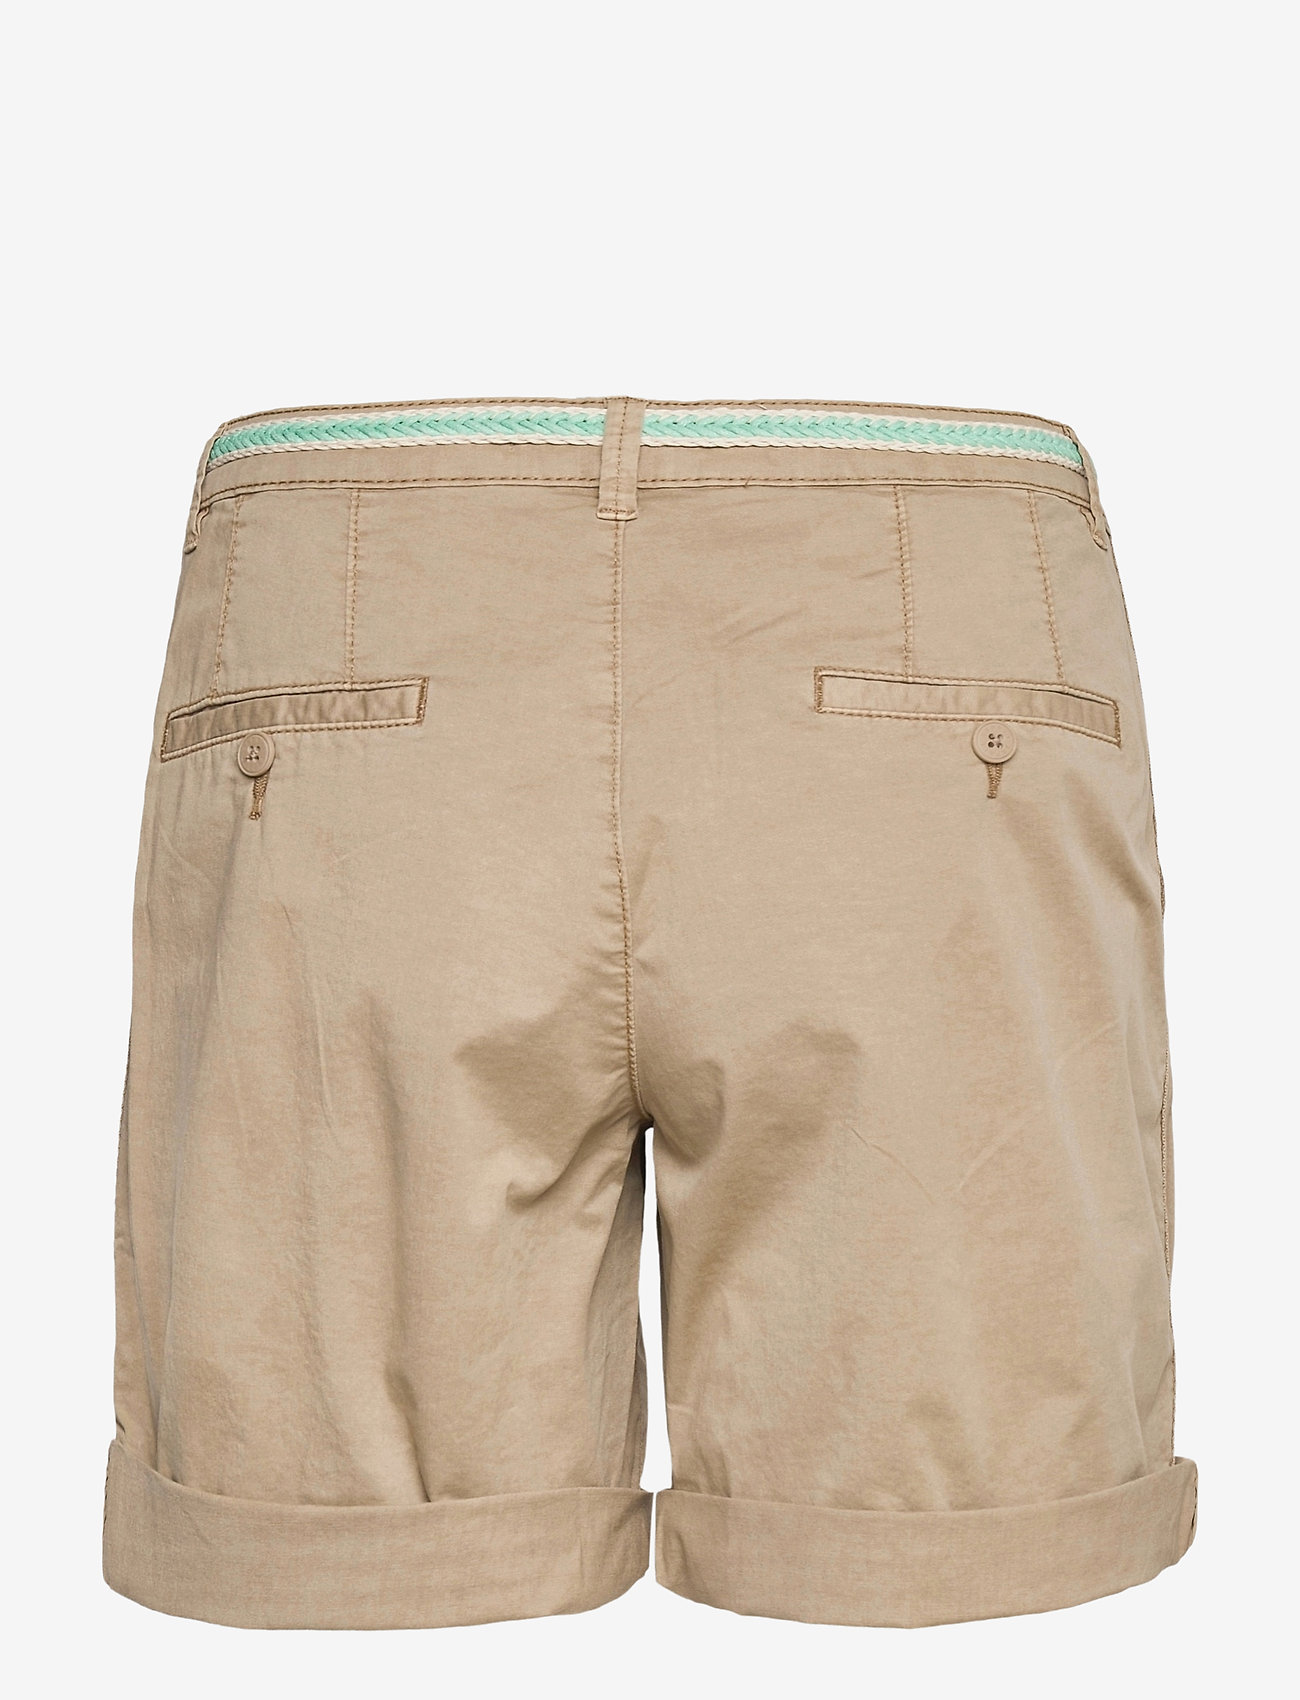 Esprit Casual - Shorts woven - chino shorts - beige - 1